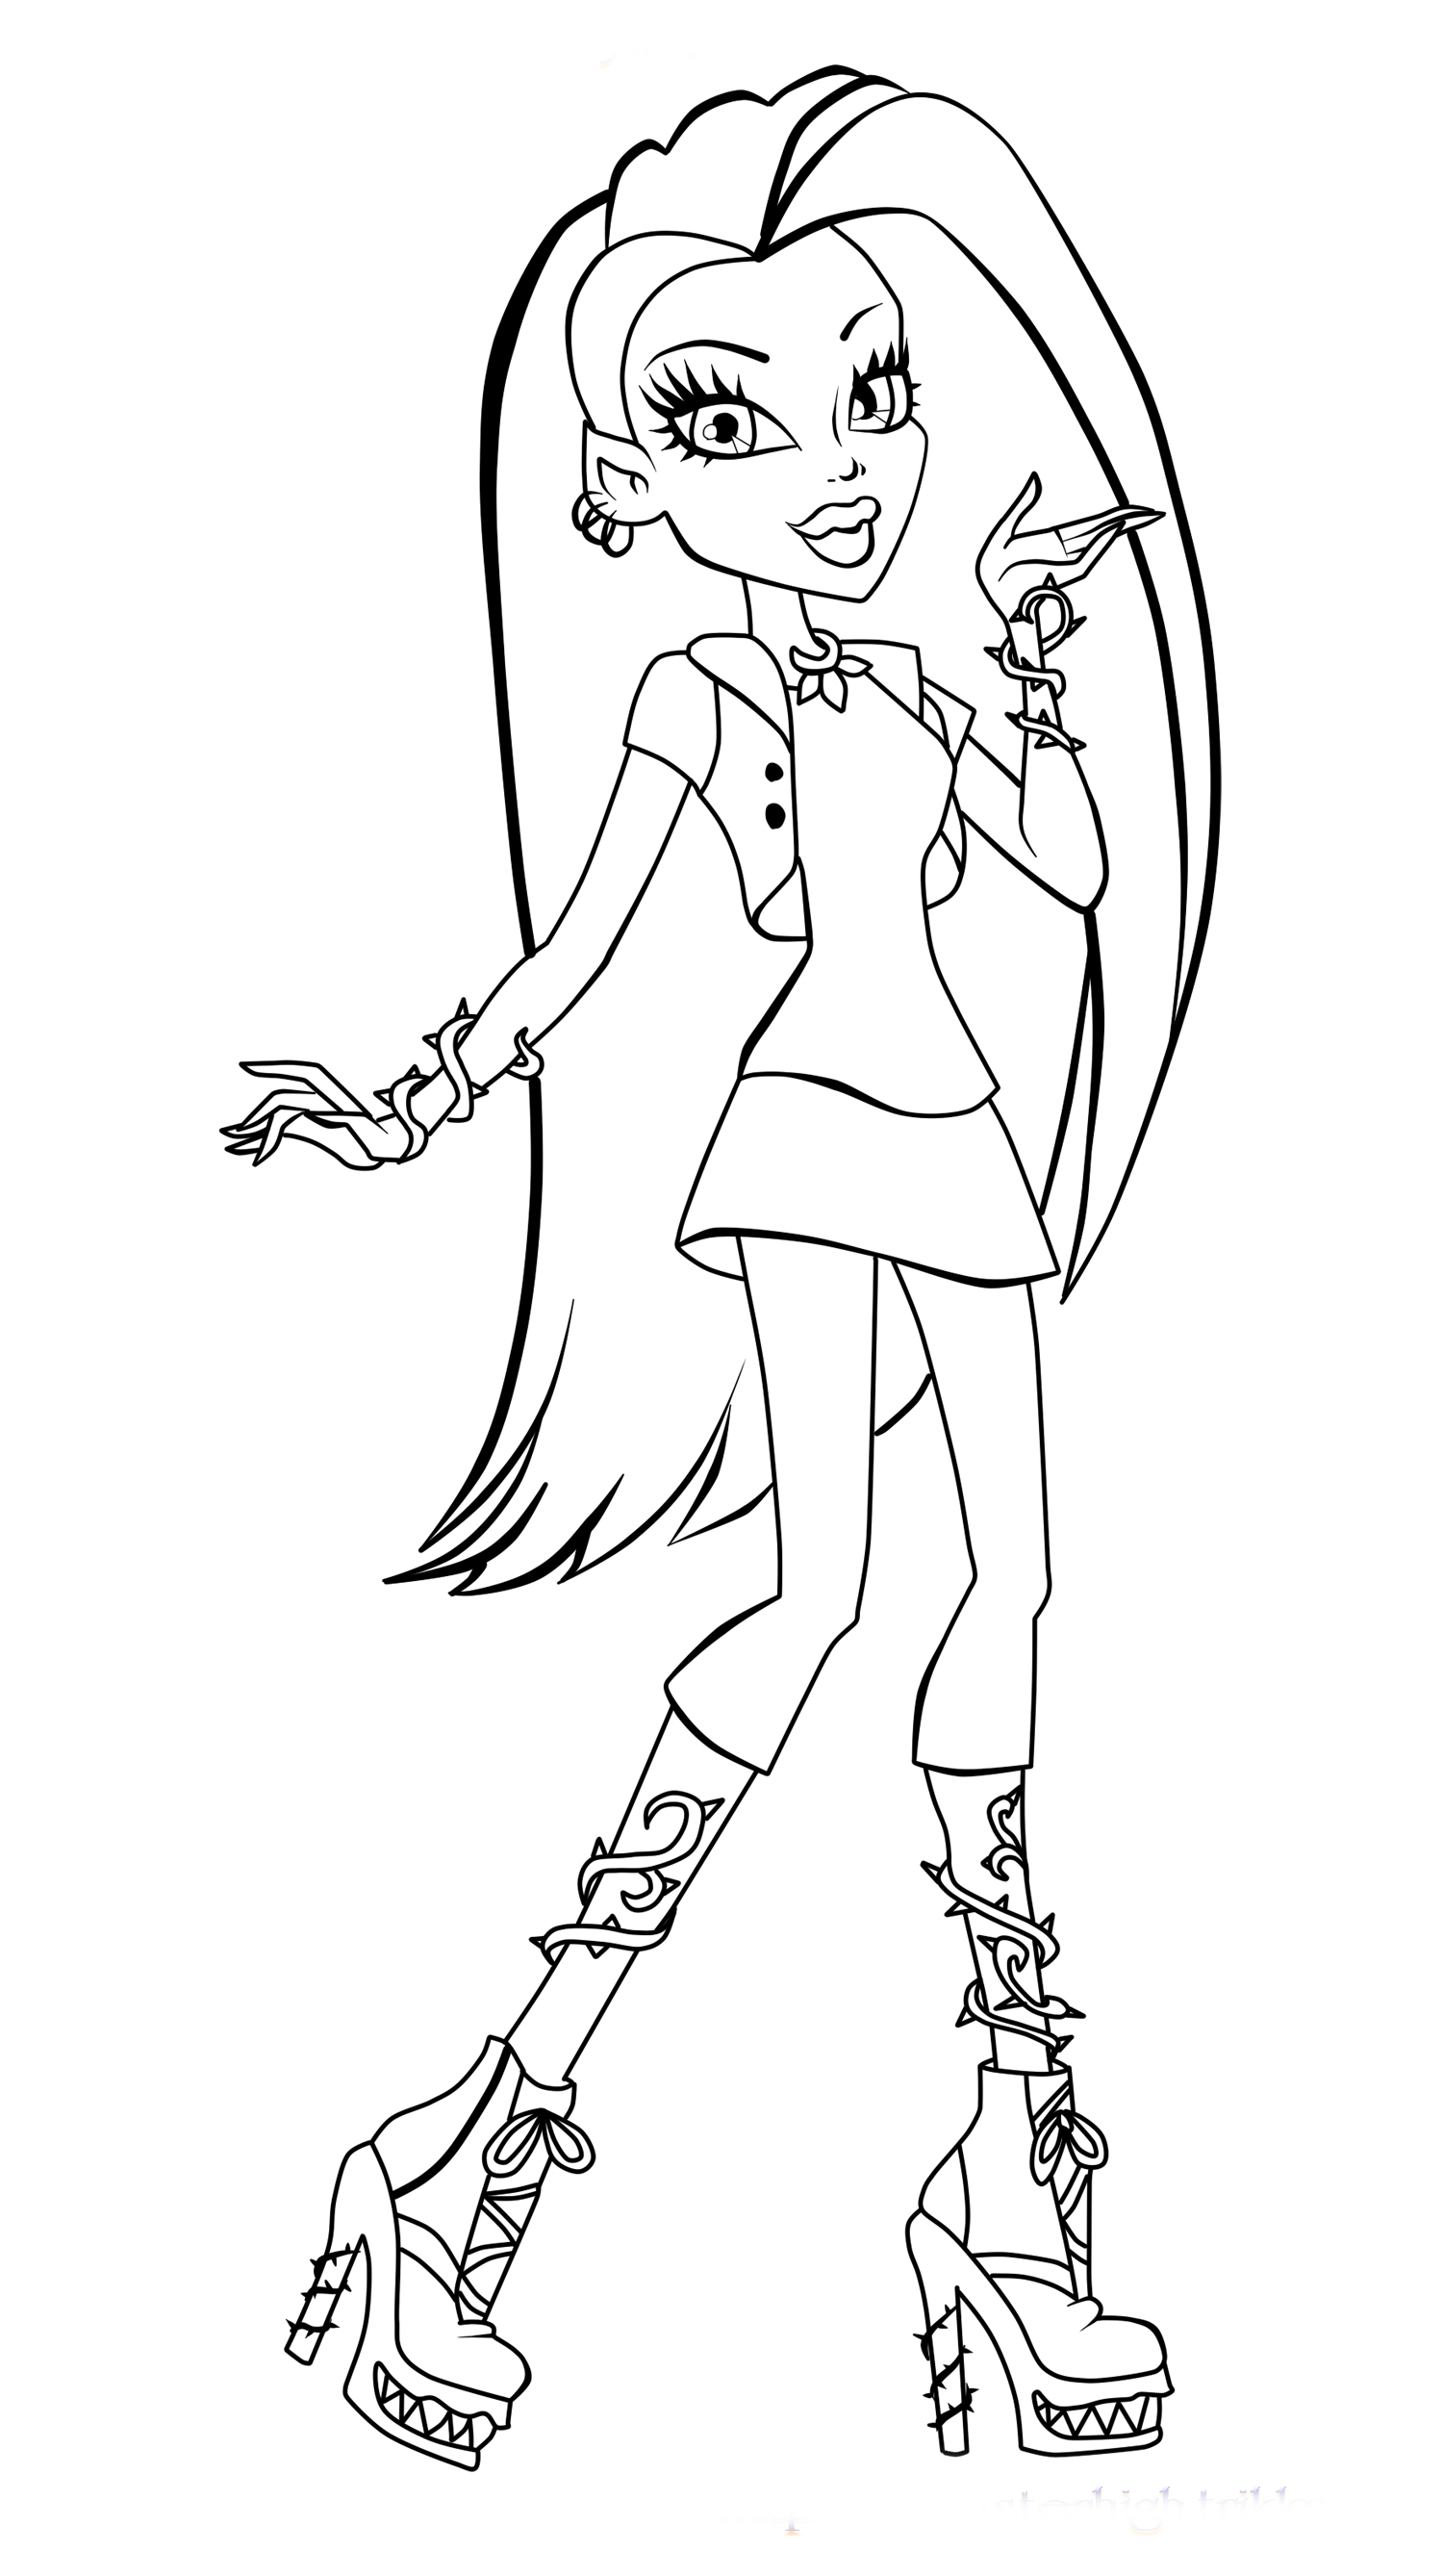 Monster high coloring pages 2018 z31 coloring page for Print monster high coloring pages